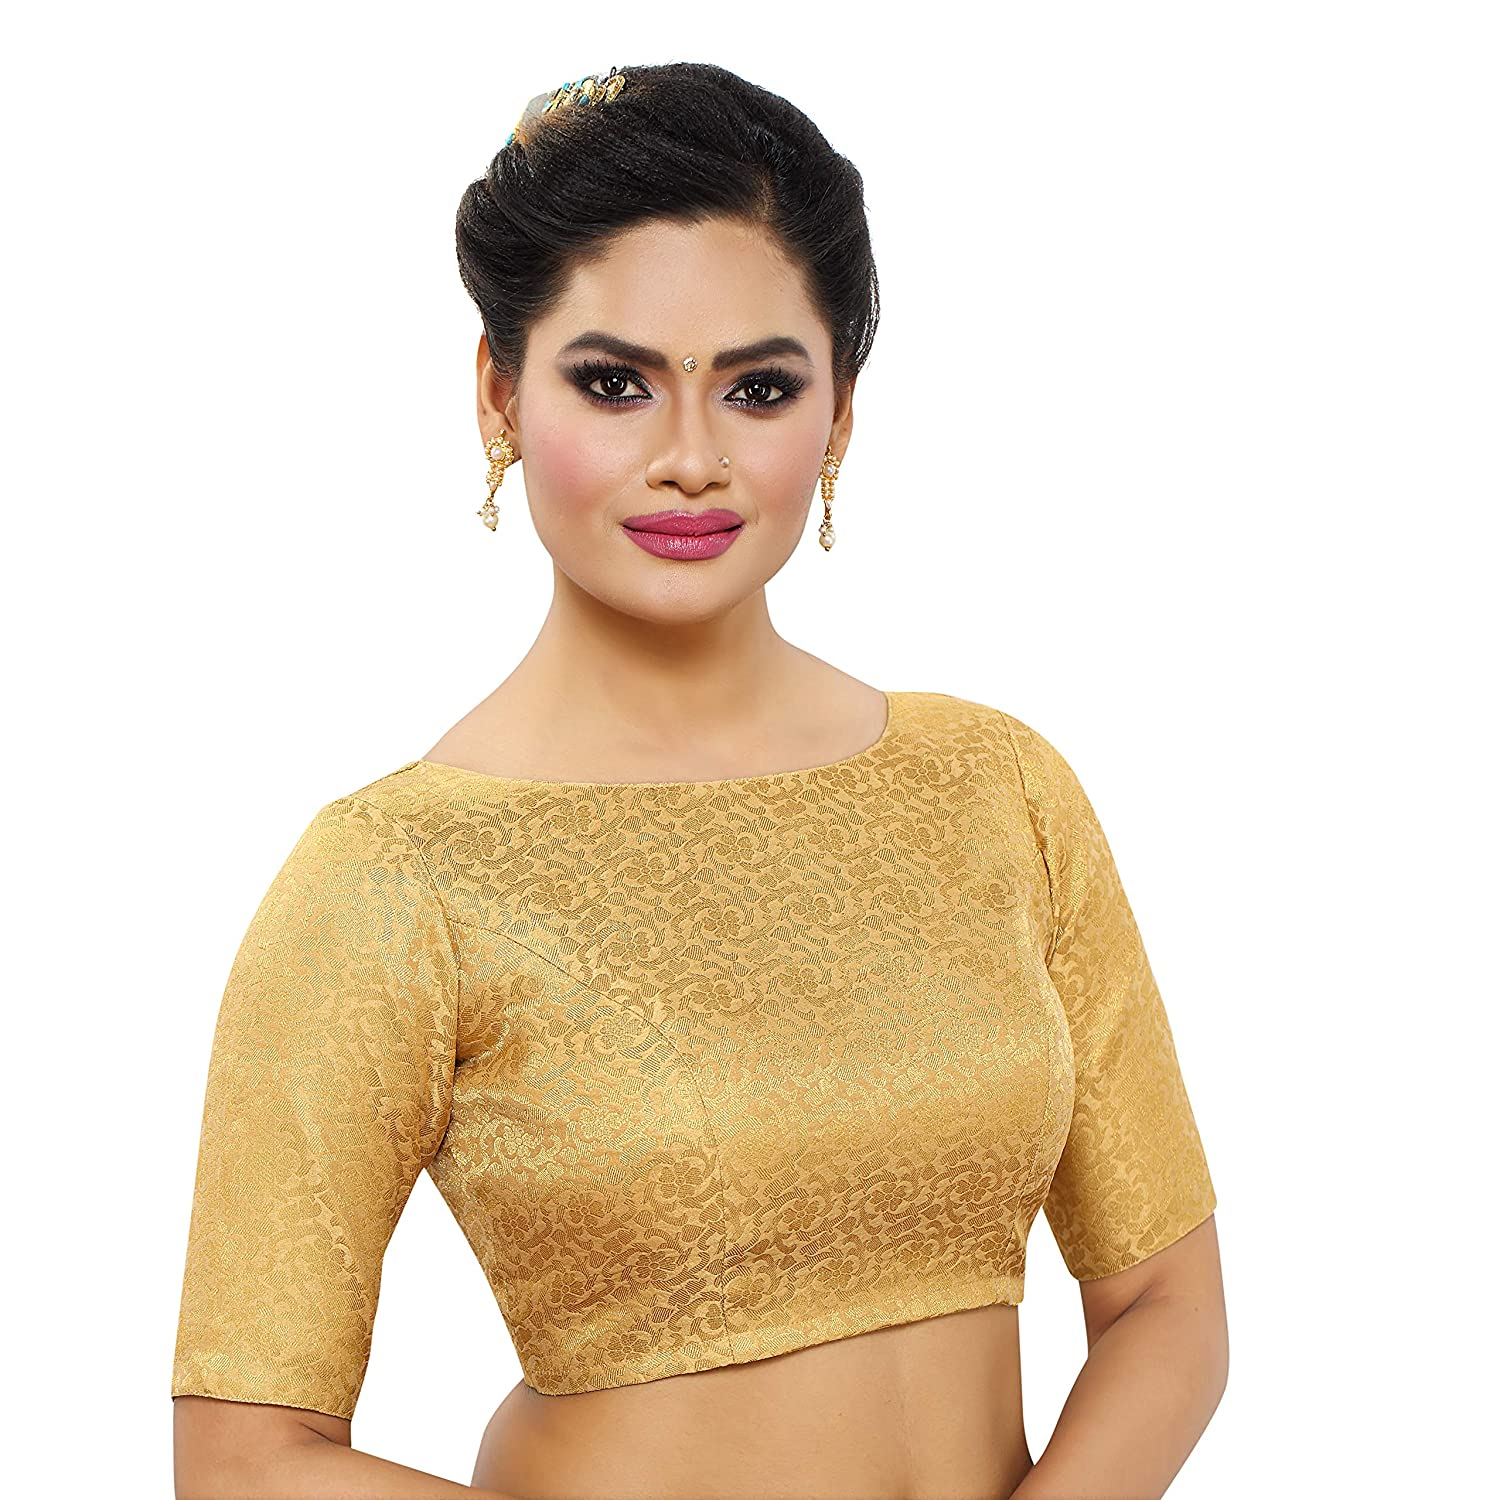 5bde4bc0a3bbf MADHU FASHION s Women s Golden Banaras Brocade Readymade Saree Blouse with  Elbow Length Sleeves   with Boat Neck  Amazon.in  Clothing   Accessories